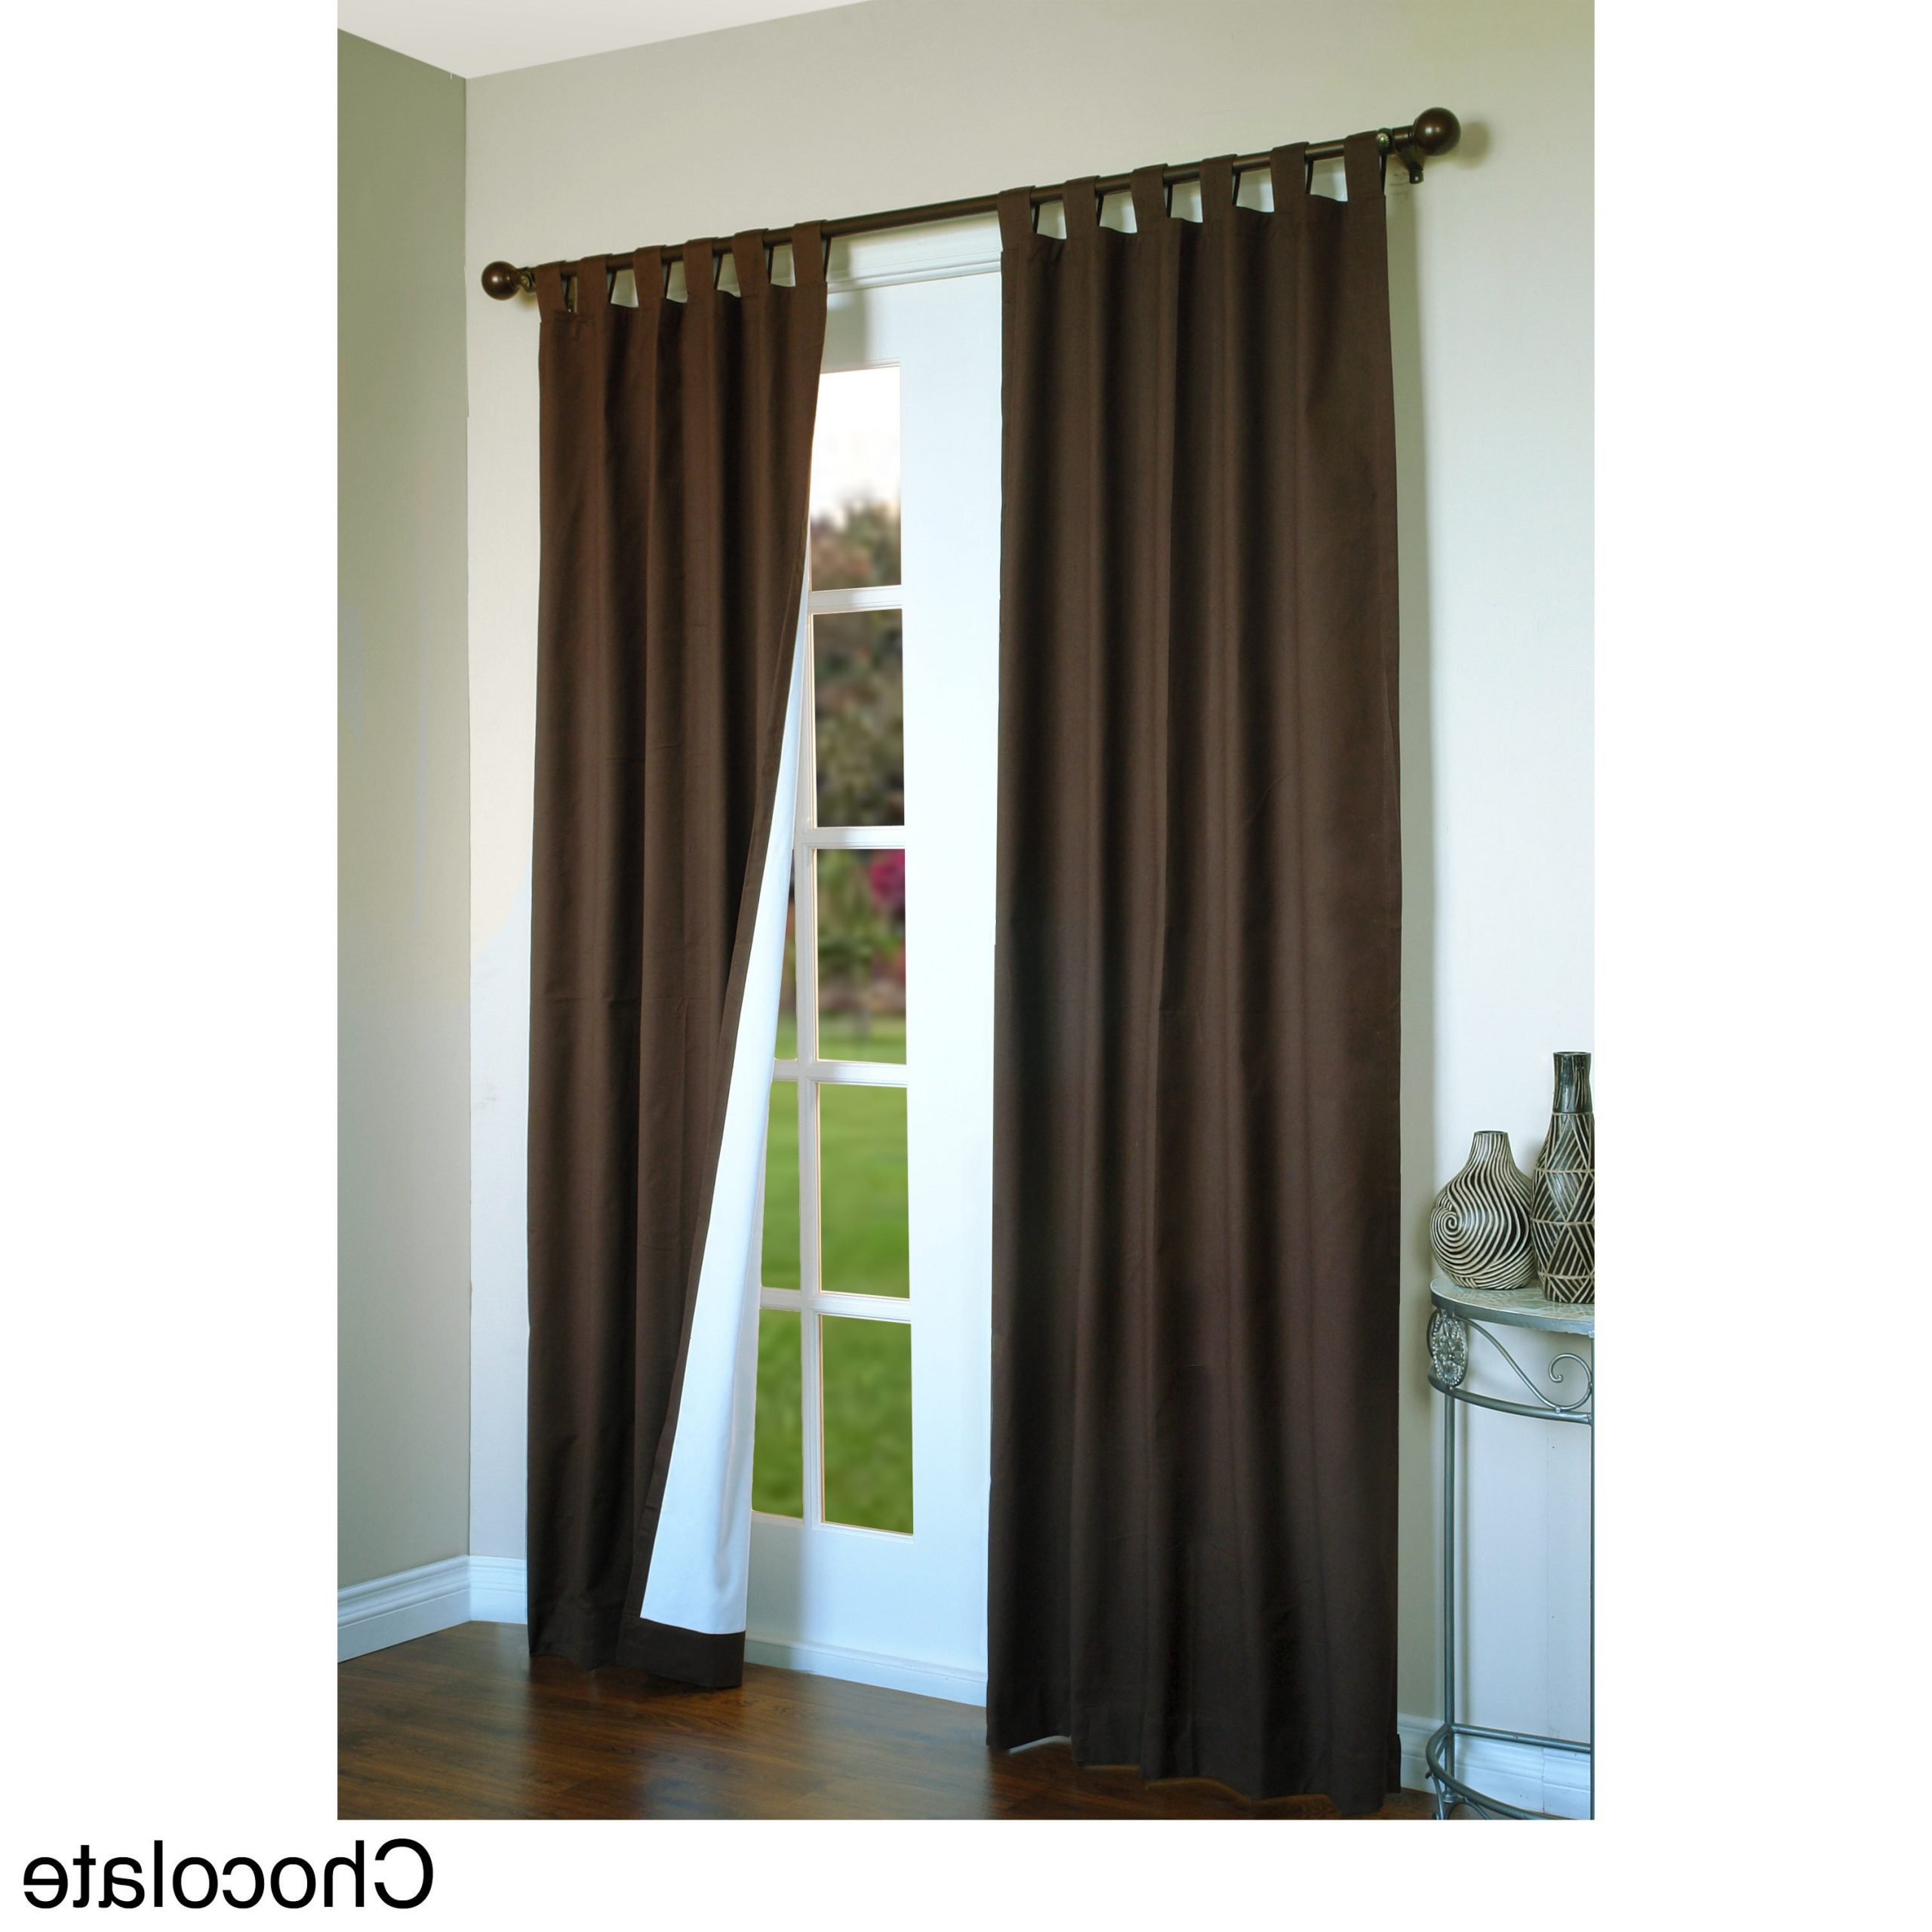 Trendy Weathermate Insulated Cotton Curtain Panel Pair Pertaining To Insulated Cotton Curtain Panel Pairs (View 2 of 20)